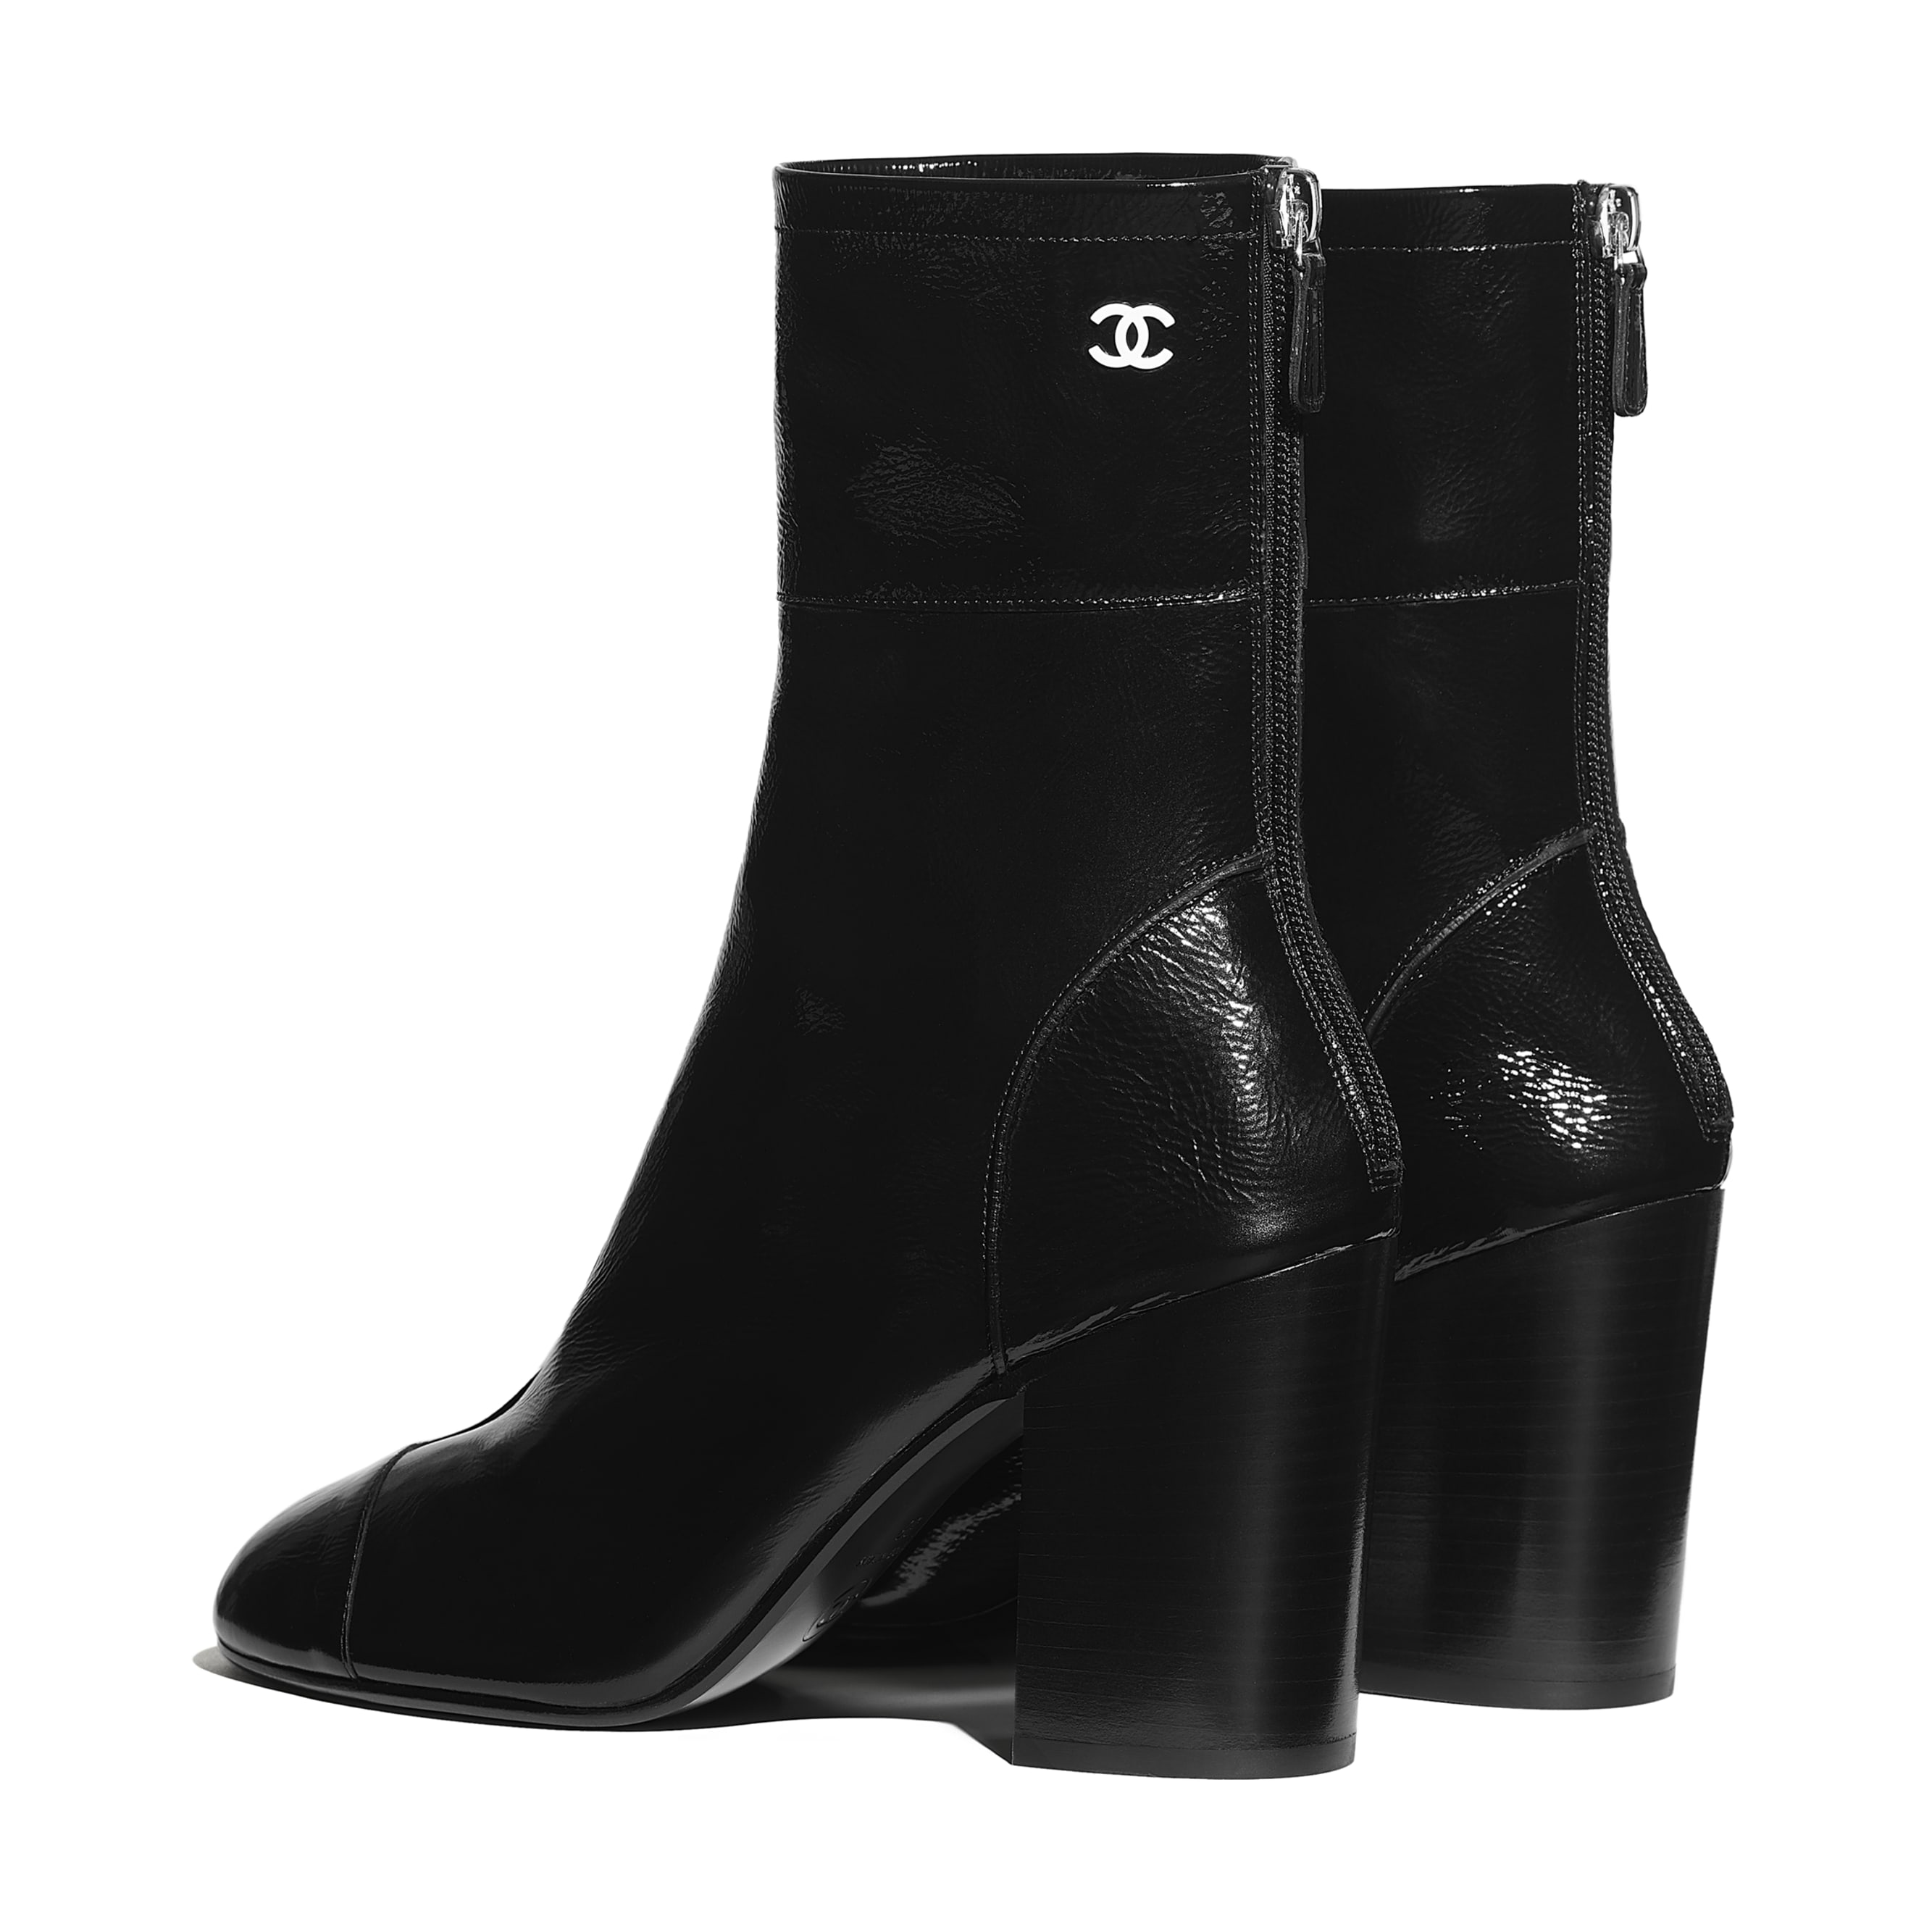 Ankle Boots - Black - Shiny Crumpled Calfskin - CHANEL - Other view - see standard sized version